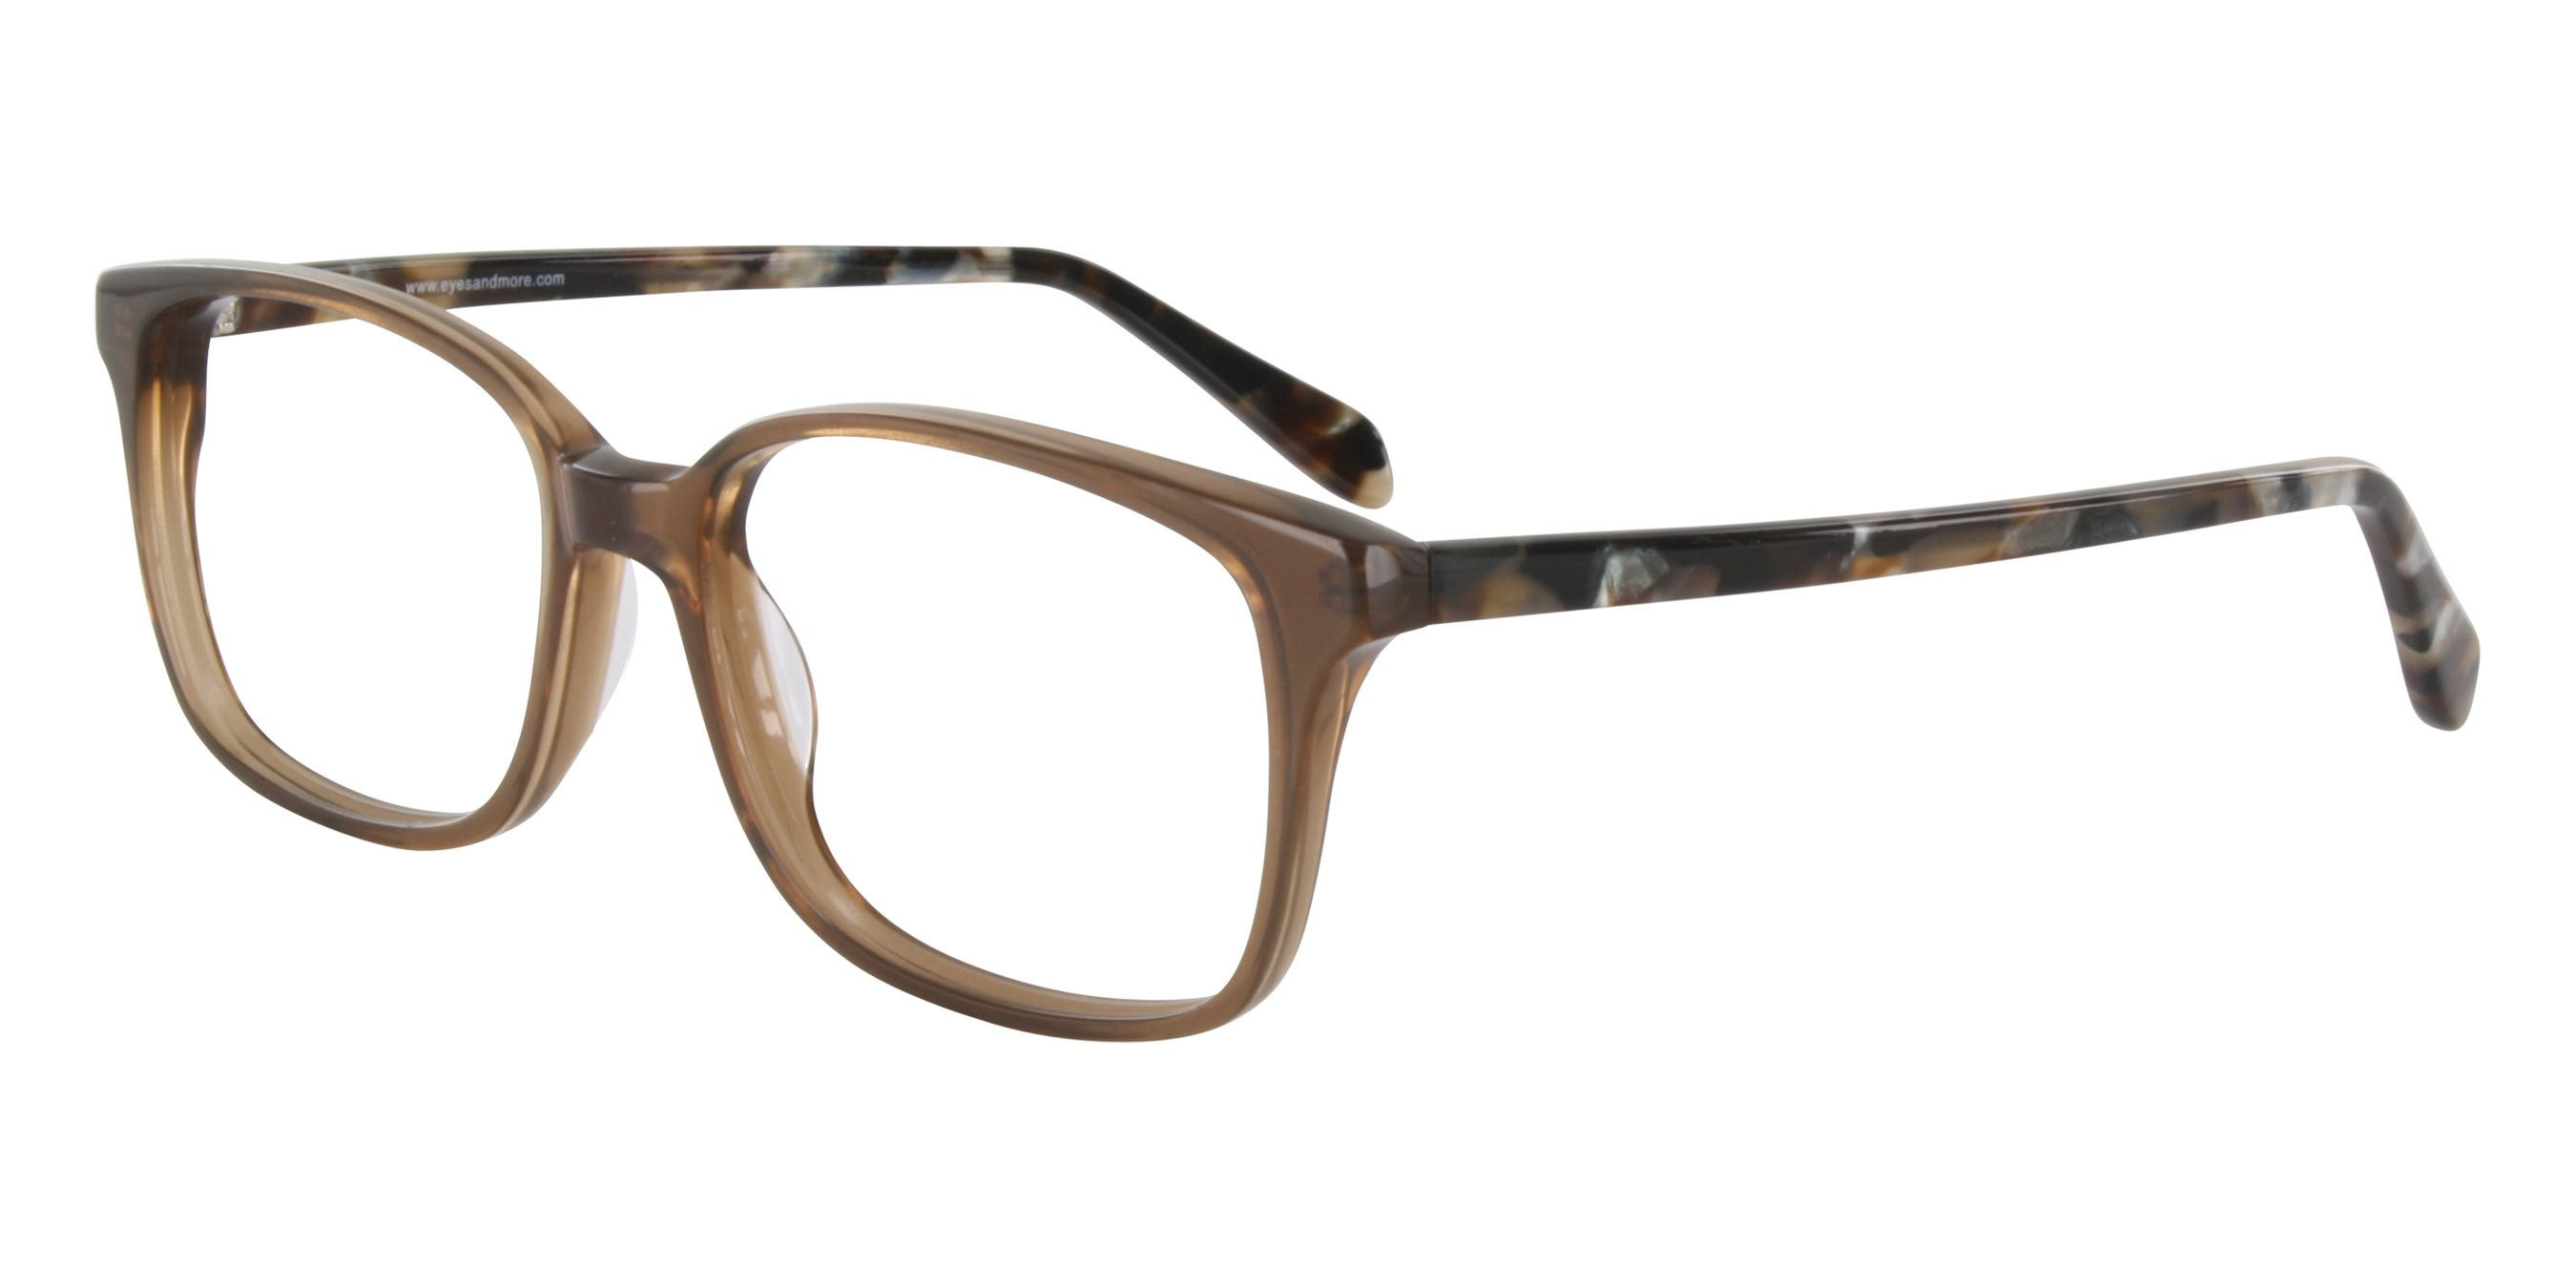 MARGAUX Brille Brown für Damen | eyes + more